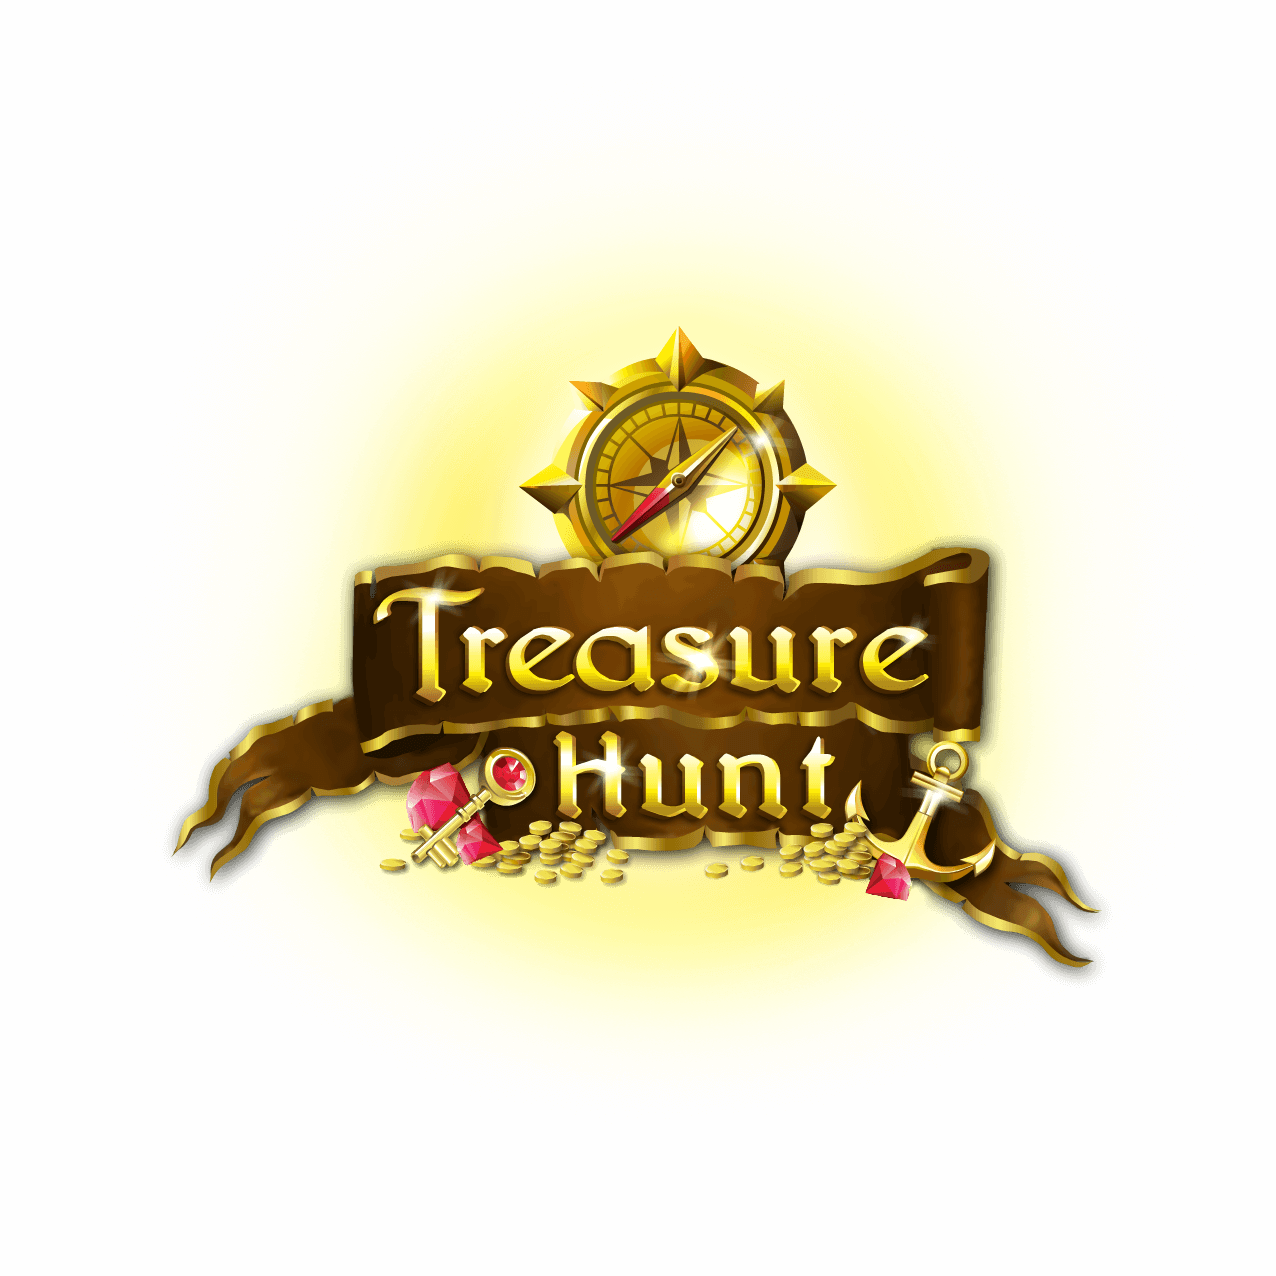 The Treasure Hunt - Treasure Hunt PNG HD